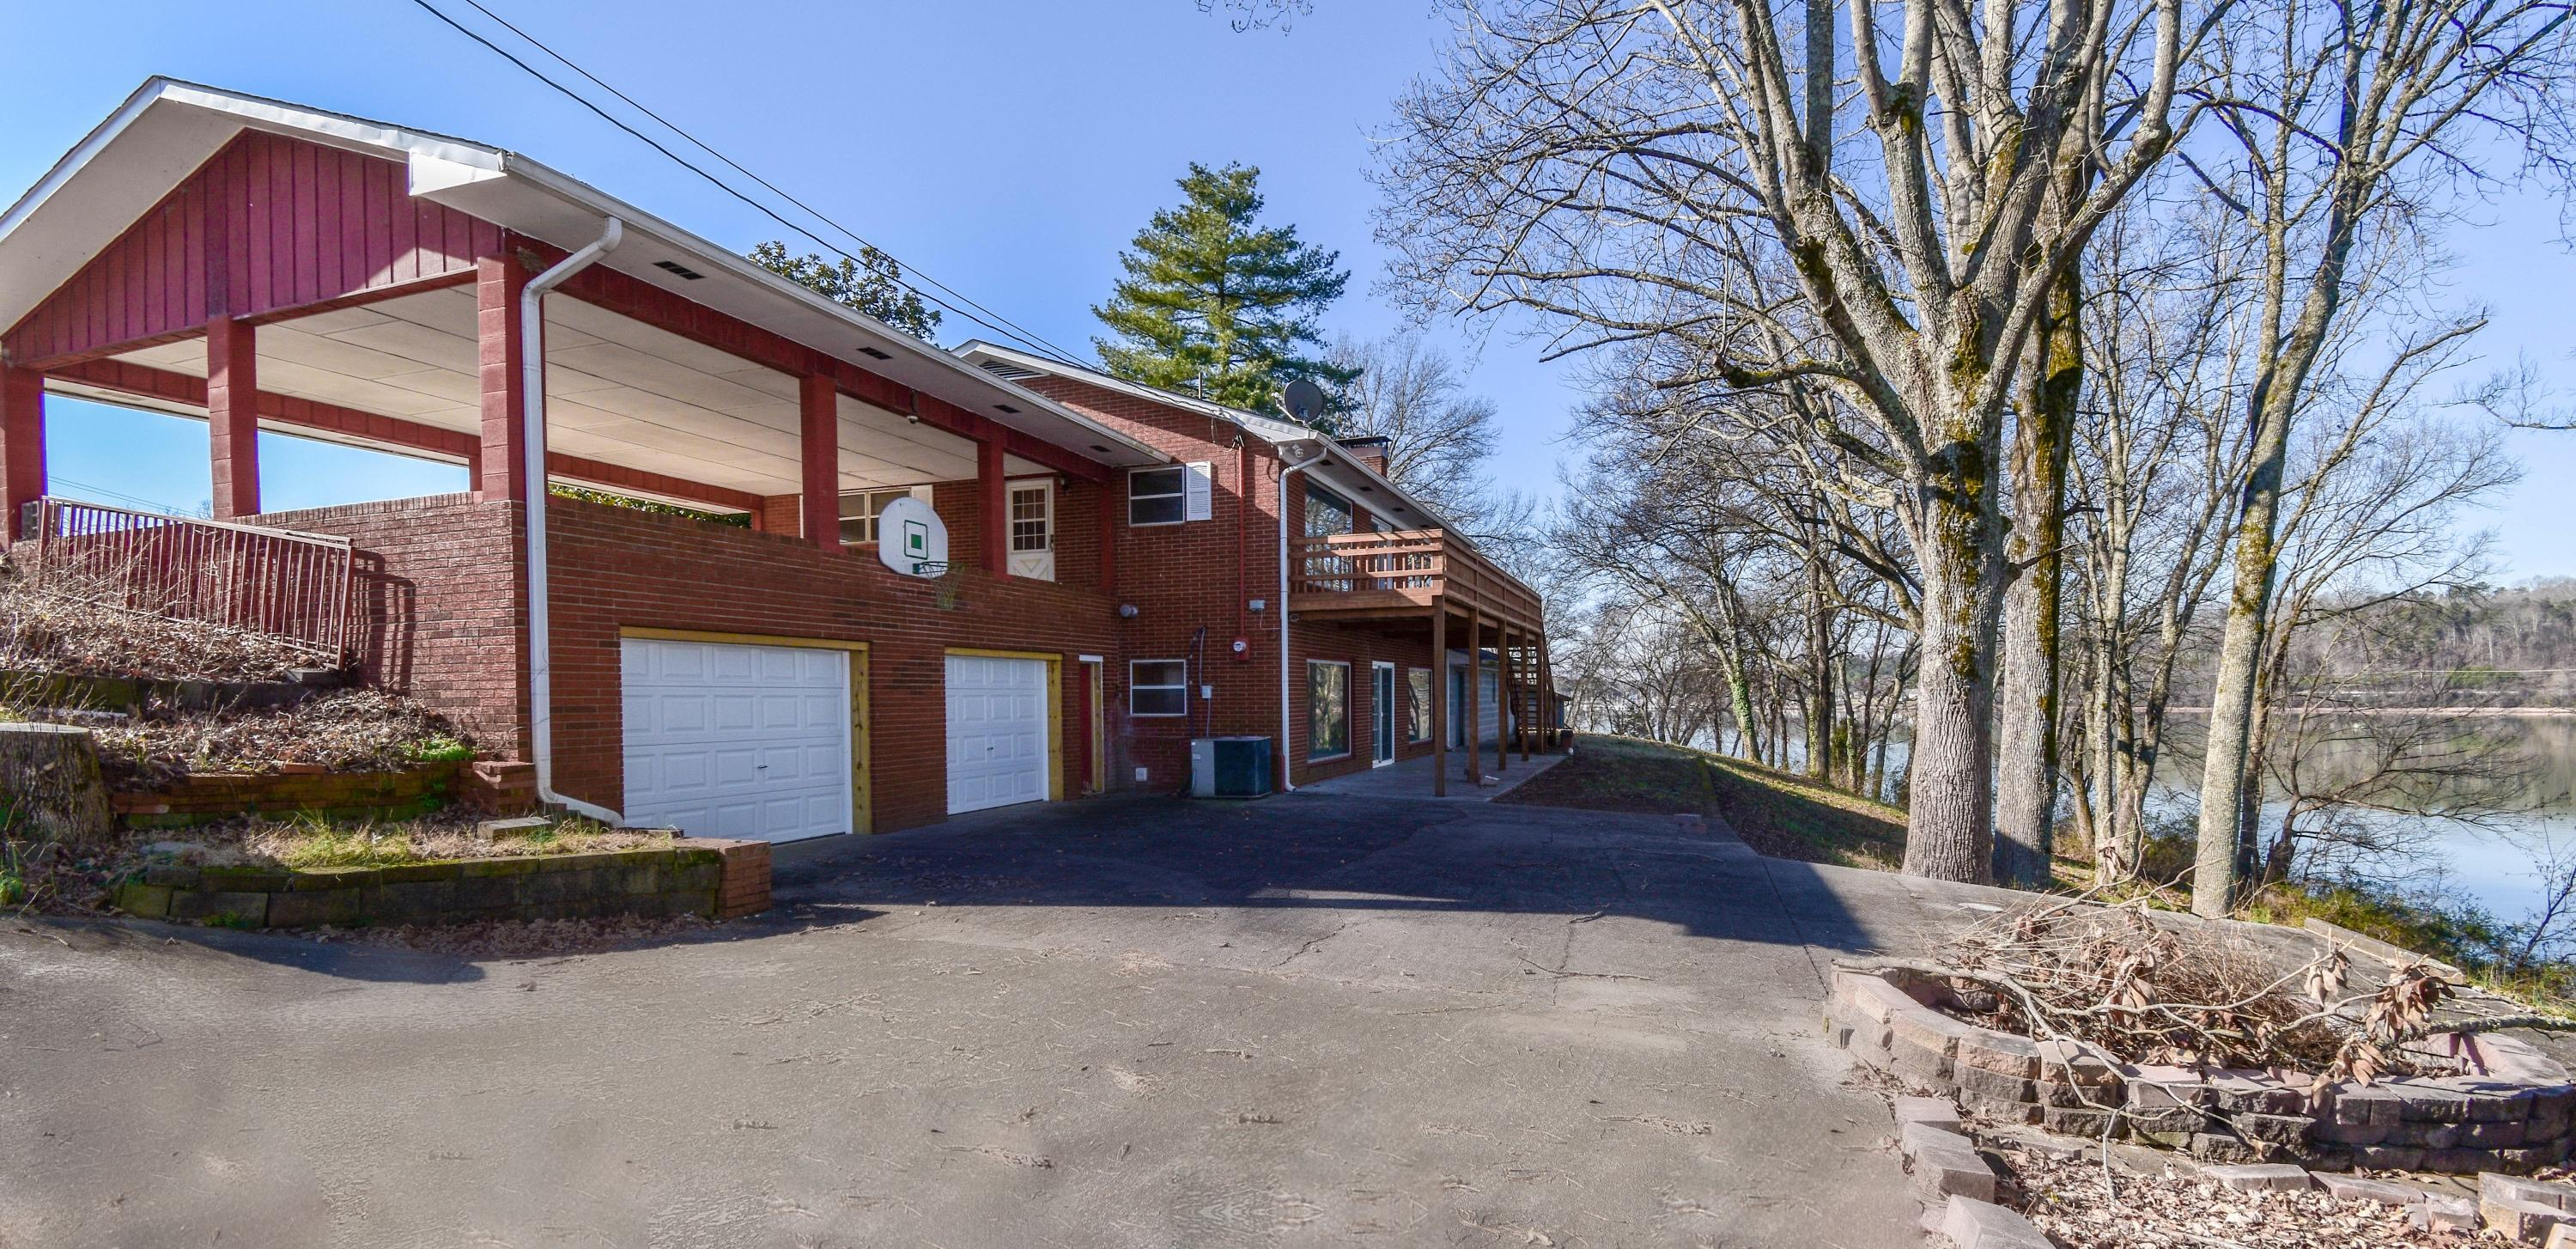 4632 Gravelly Hills Rd: